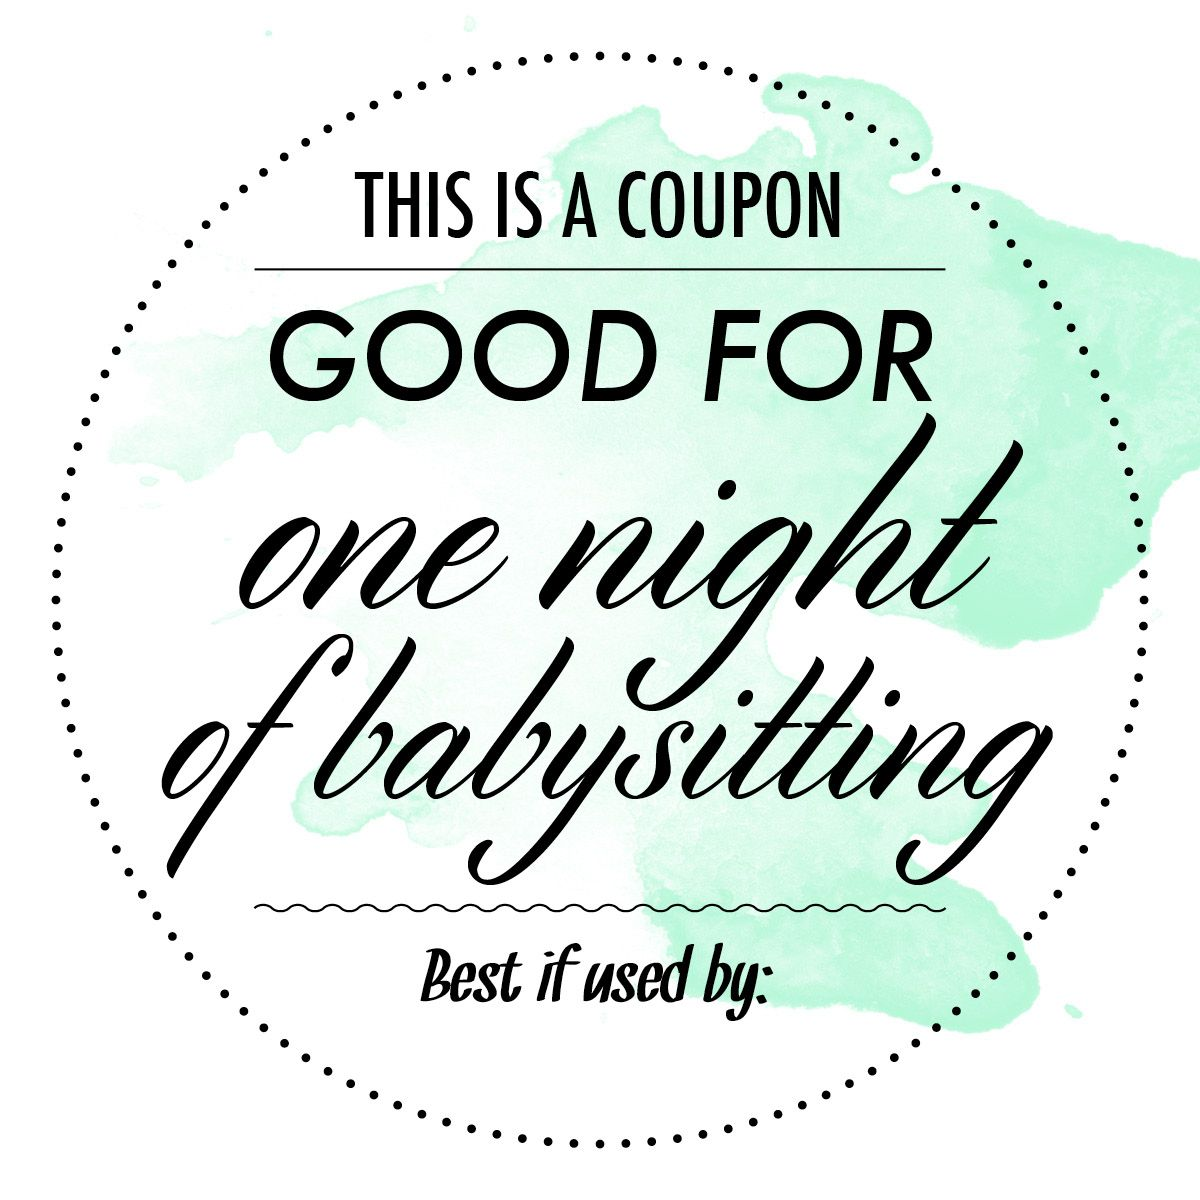 Free Babysitting Coupon   Google Search  Microsoft Office Coupon Template